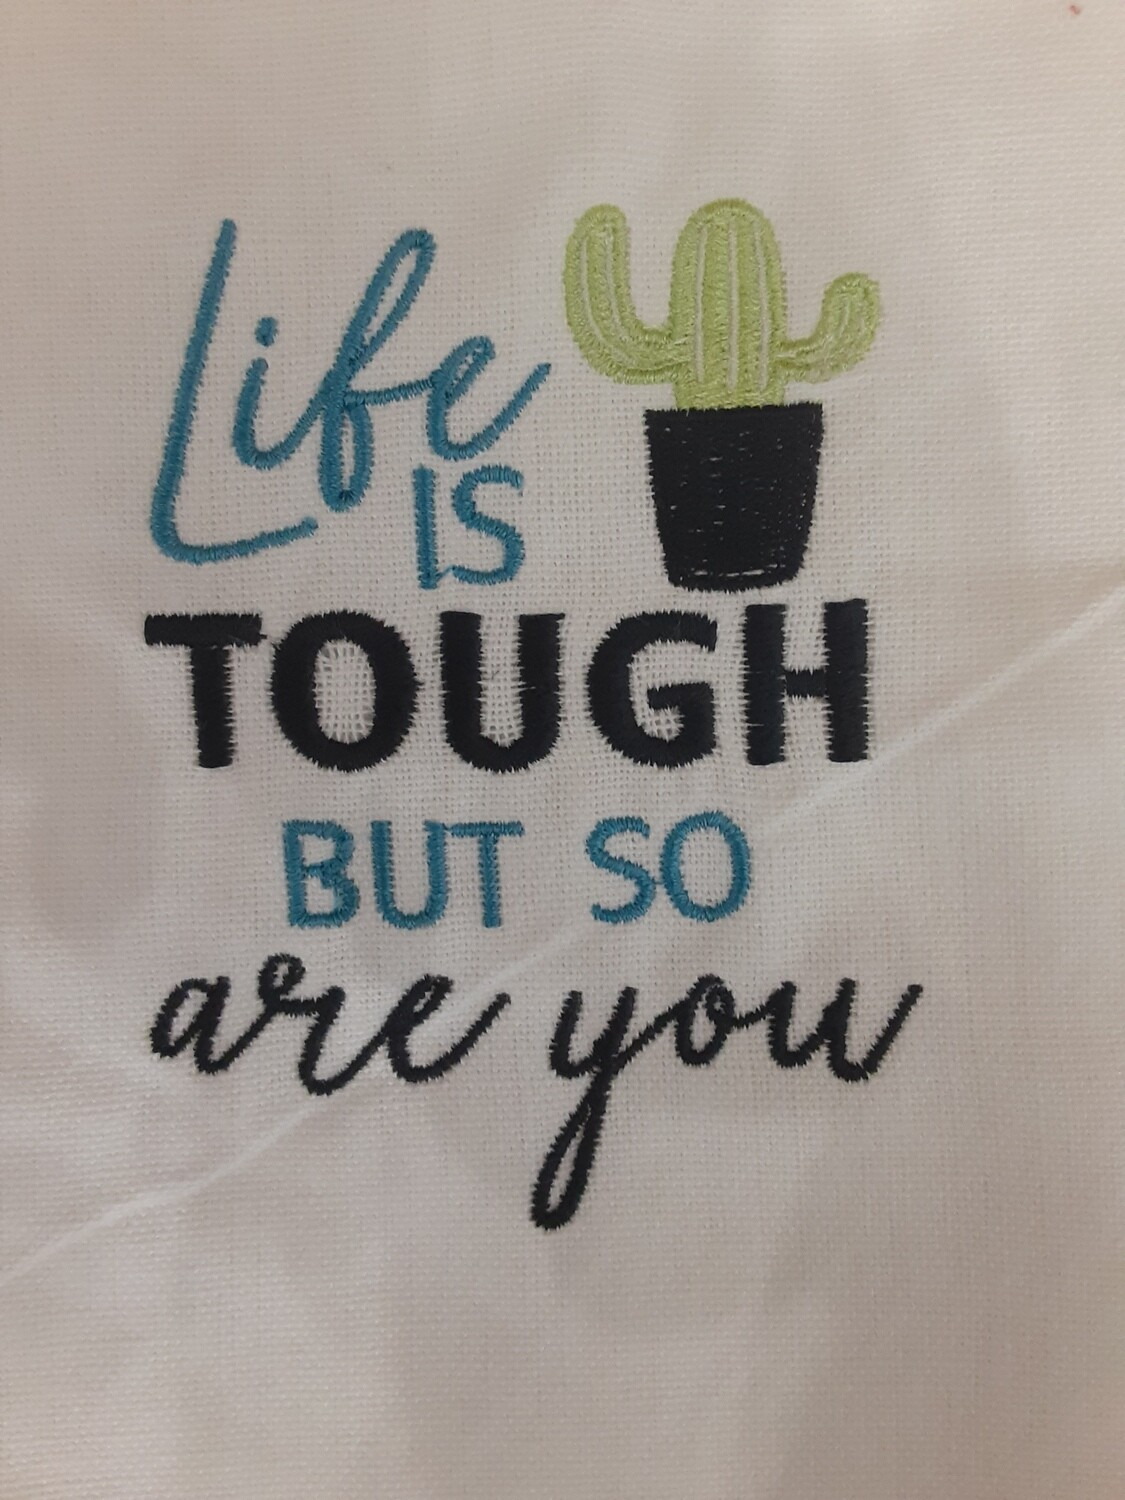 Inspirational / Good Thoughts Embroideries - click to see more